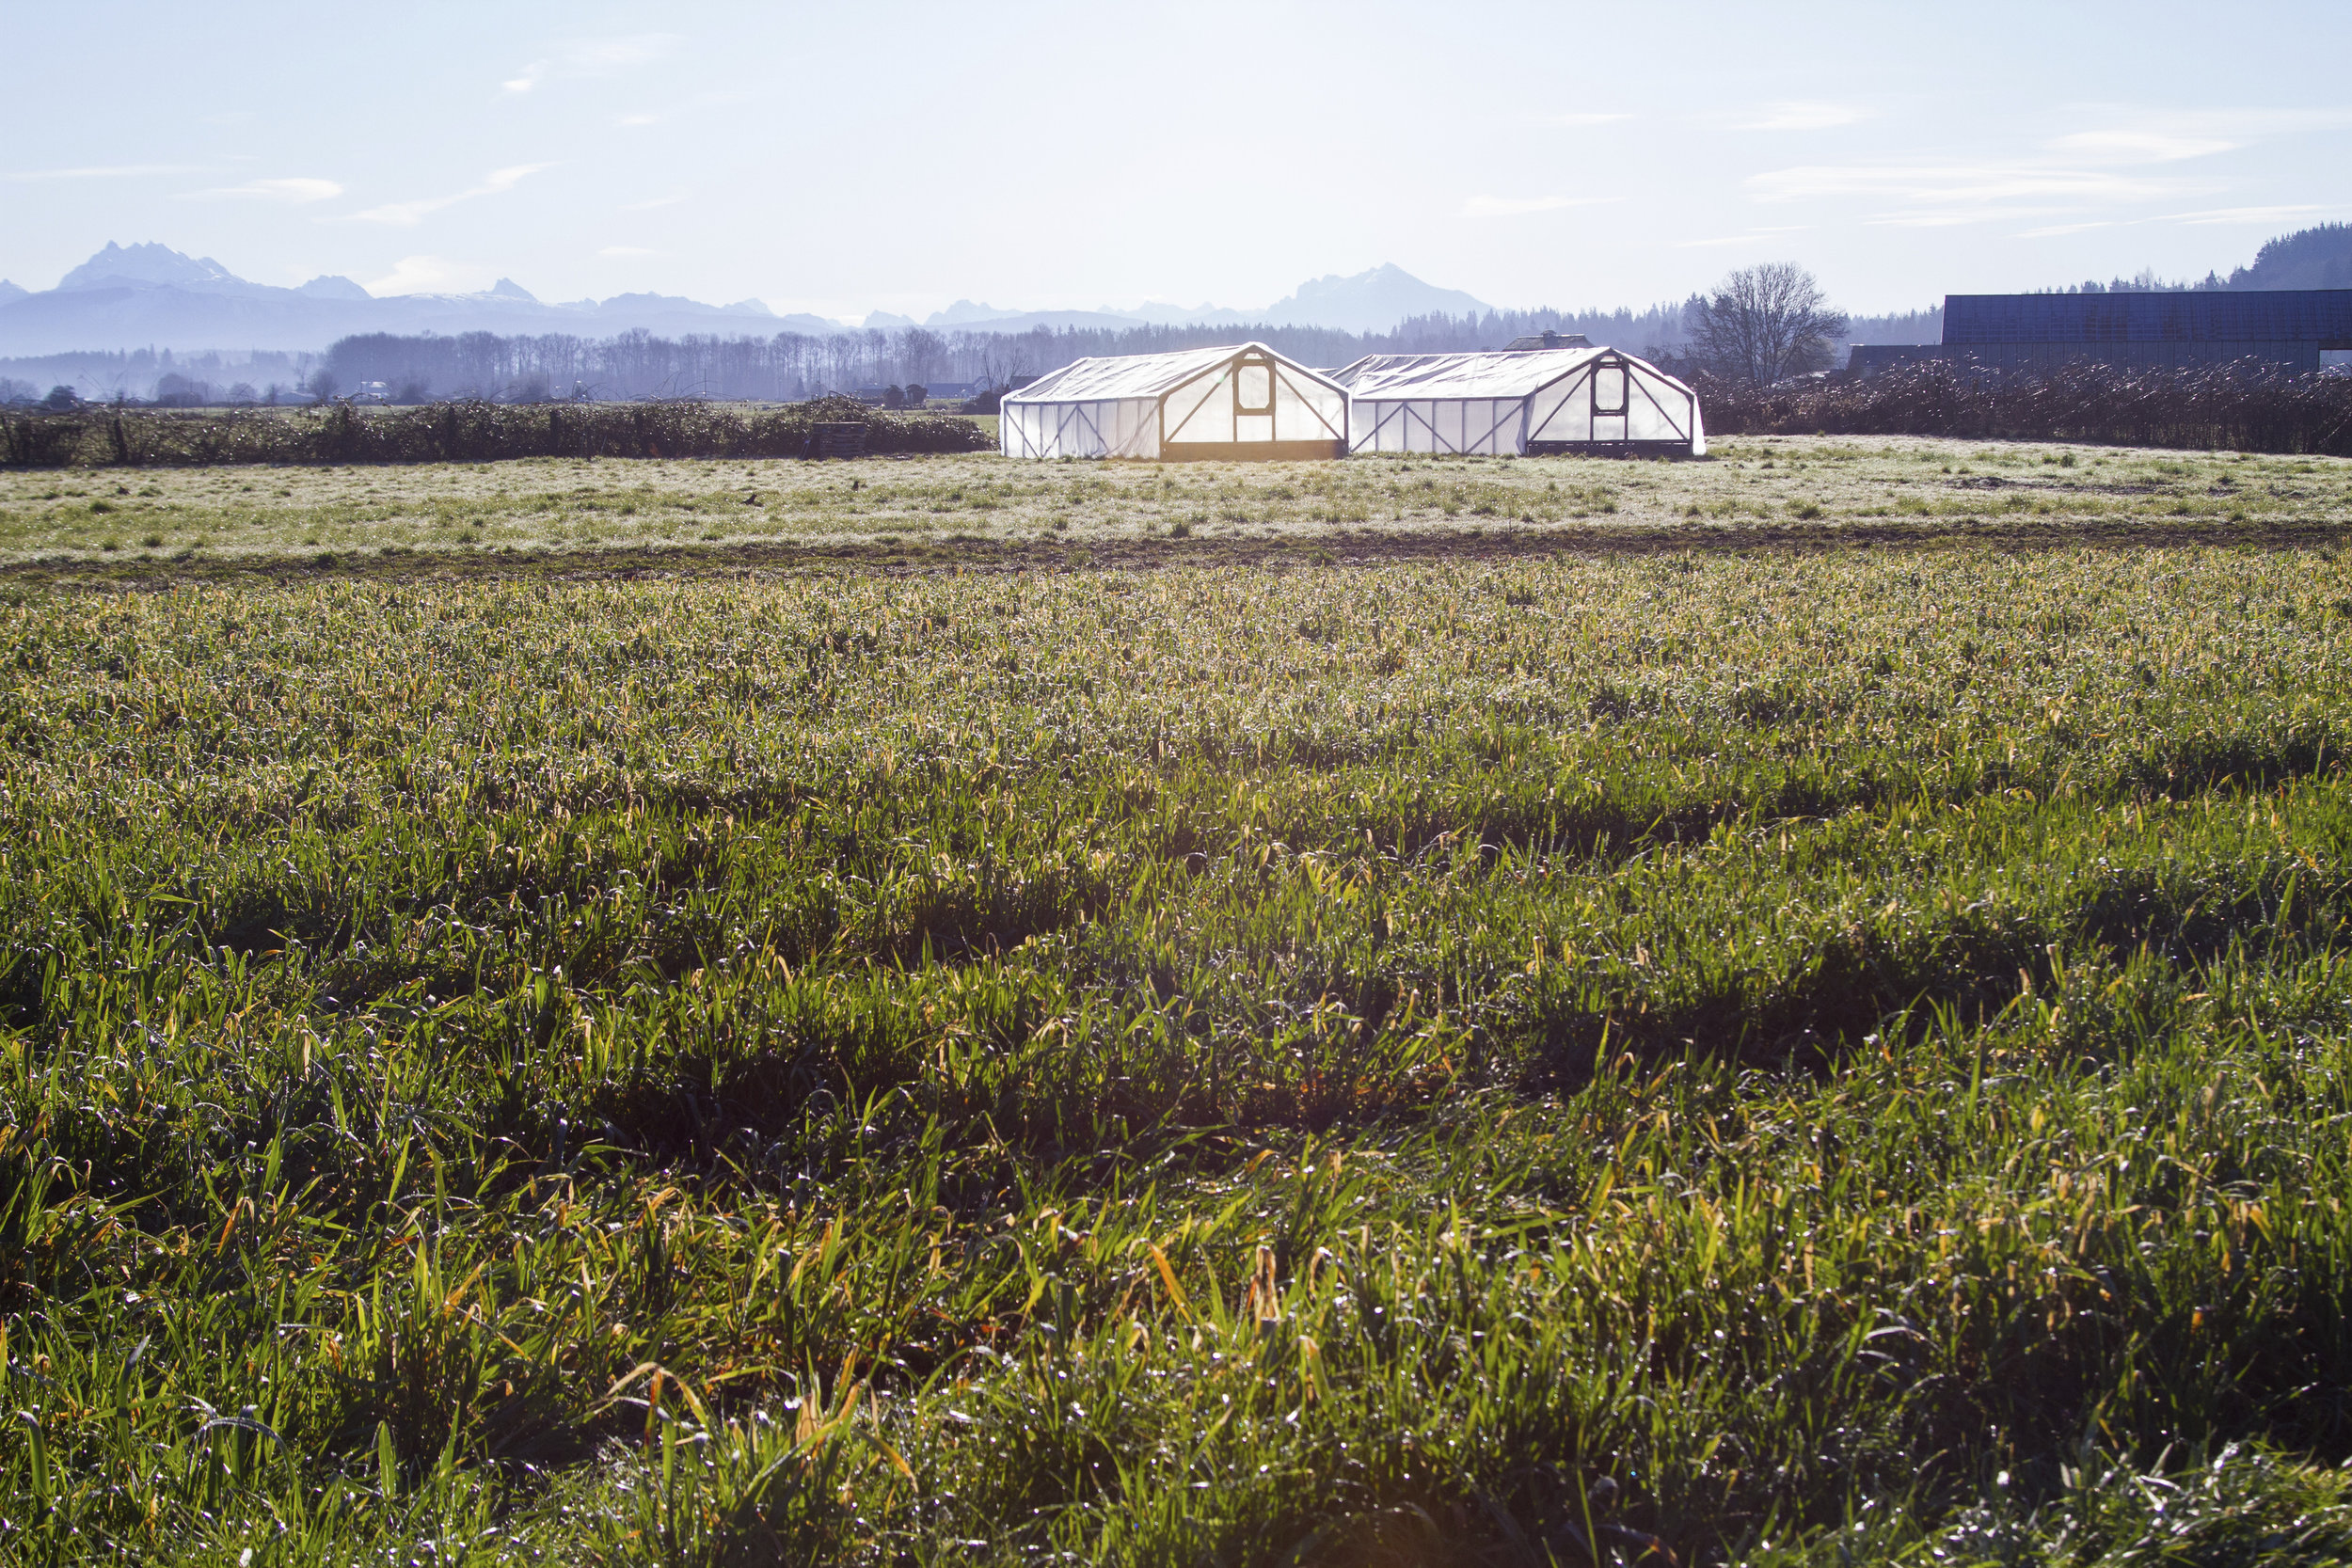 Courtney Baxter interviewed Tristan Klesick about his experience on Klesick Farm and his passion for community-based conservation. These are Tristan's greenhouses. Photo by Kelly Compton.